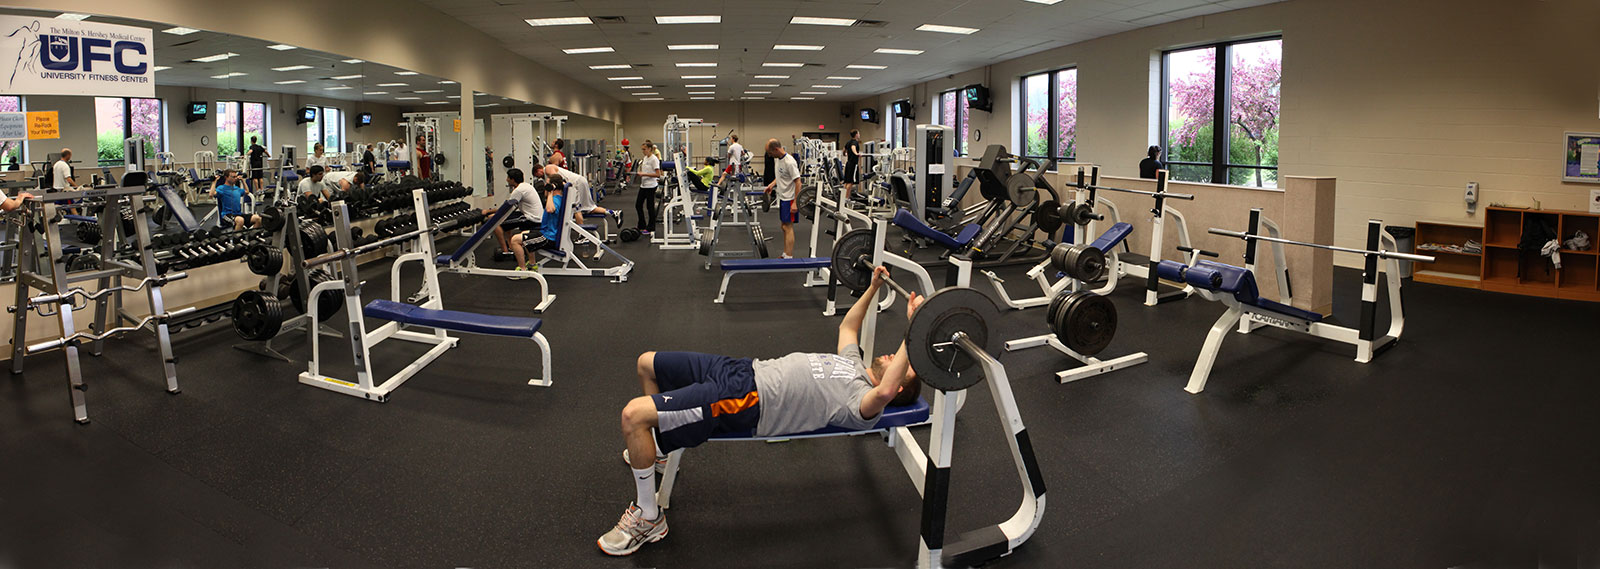 Penn State College of Medicine's University Fitness Center is seen in a 2013 panoramic photo. Various equipment and weight benches can be seen in rows, with mirrors along one wall. People are using some of the equipment.